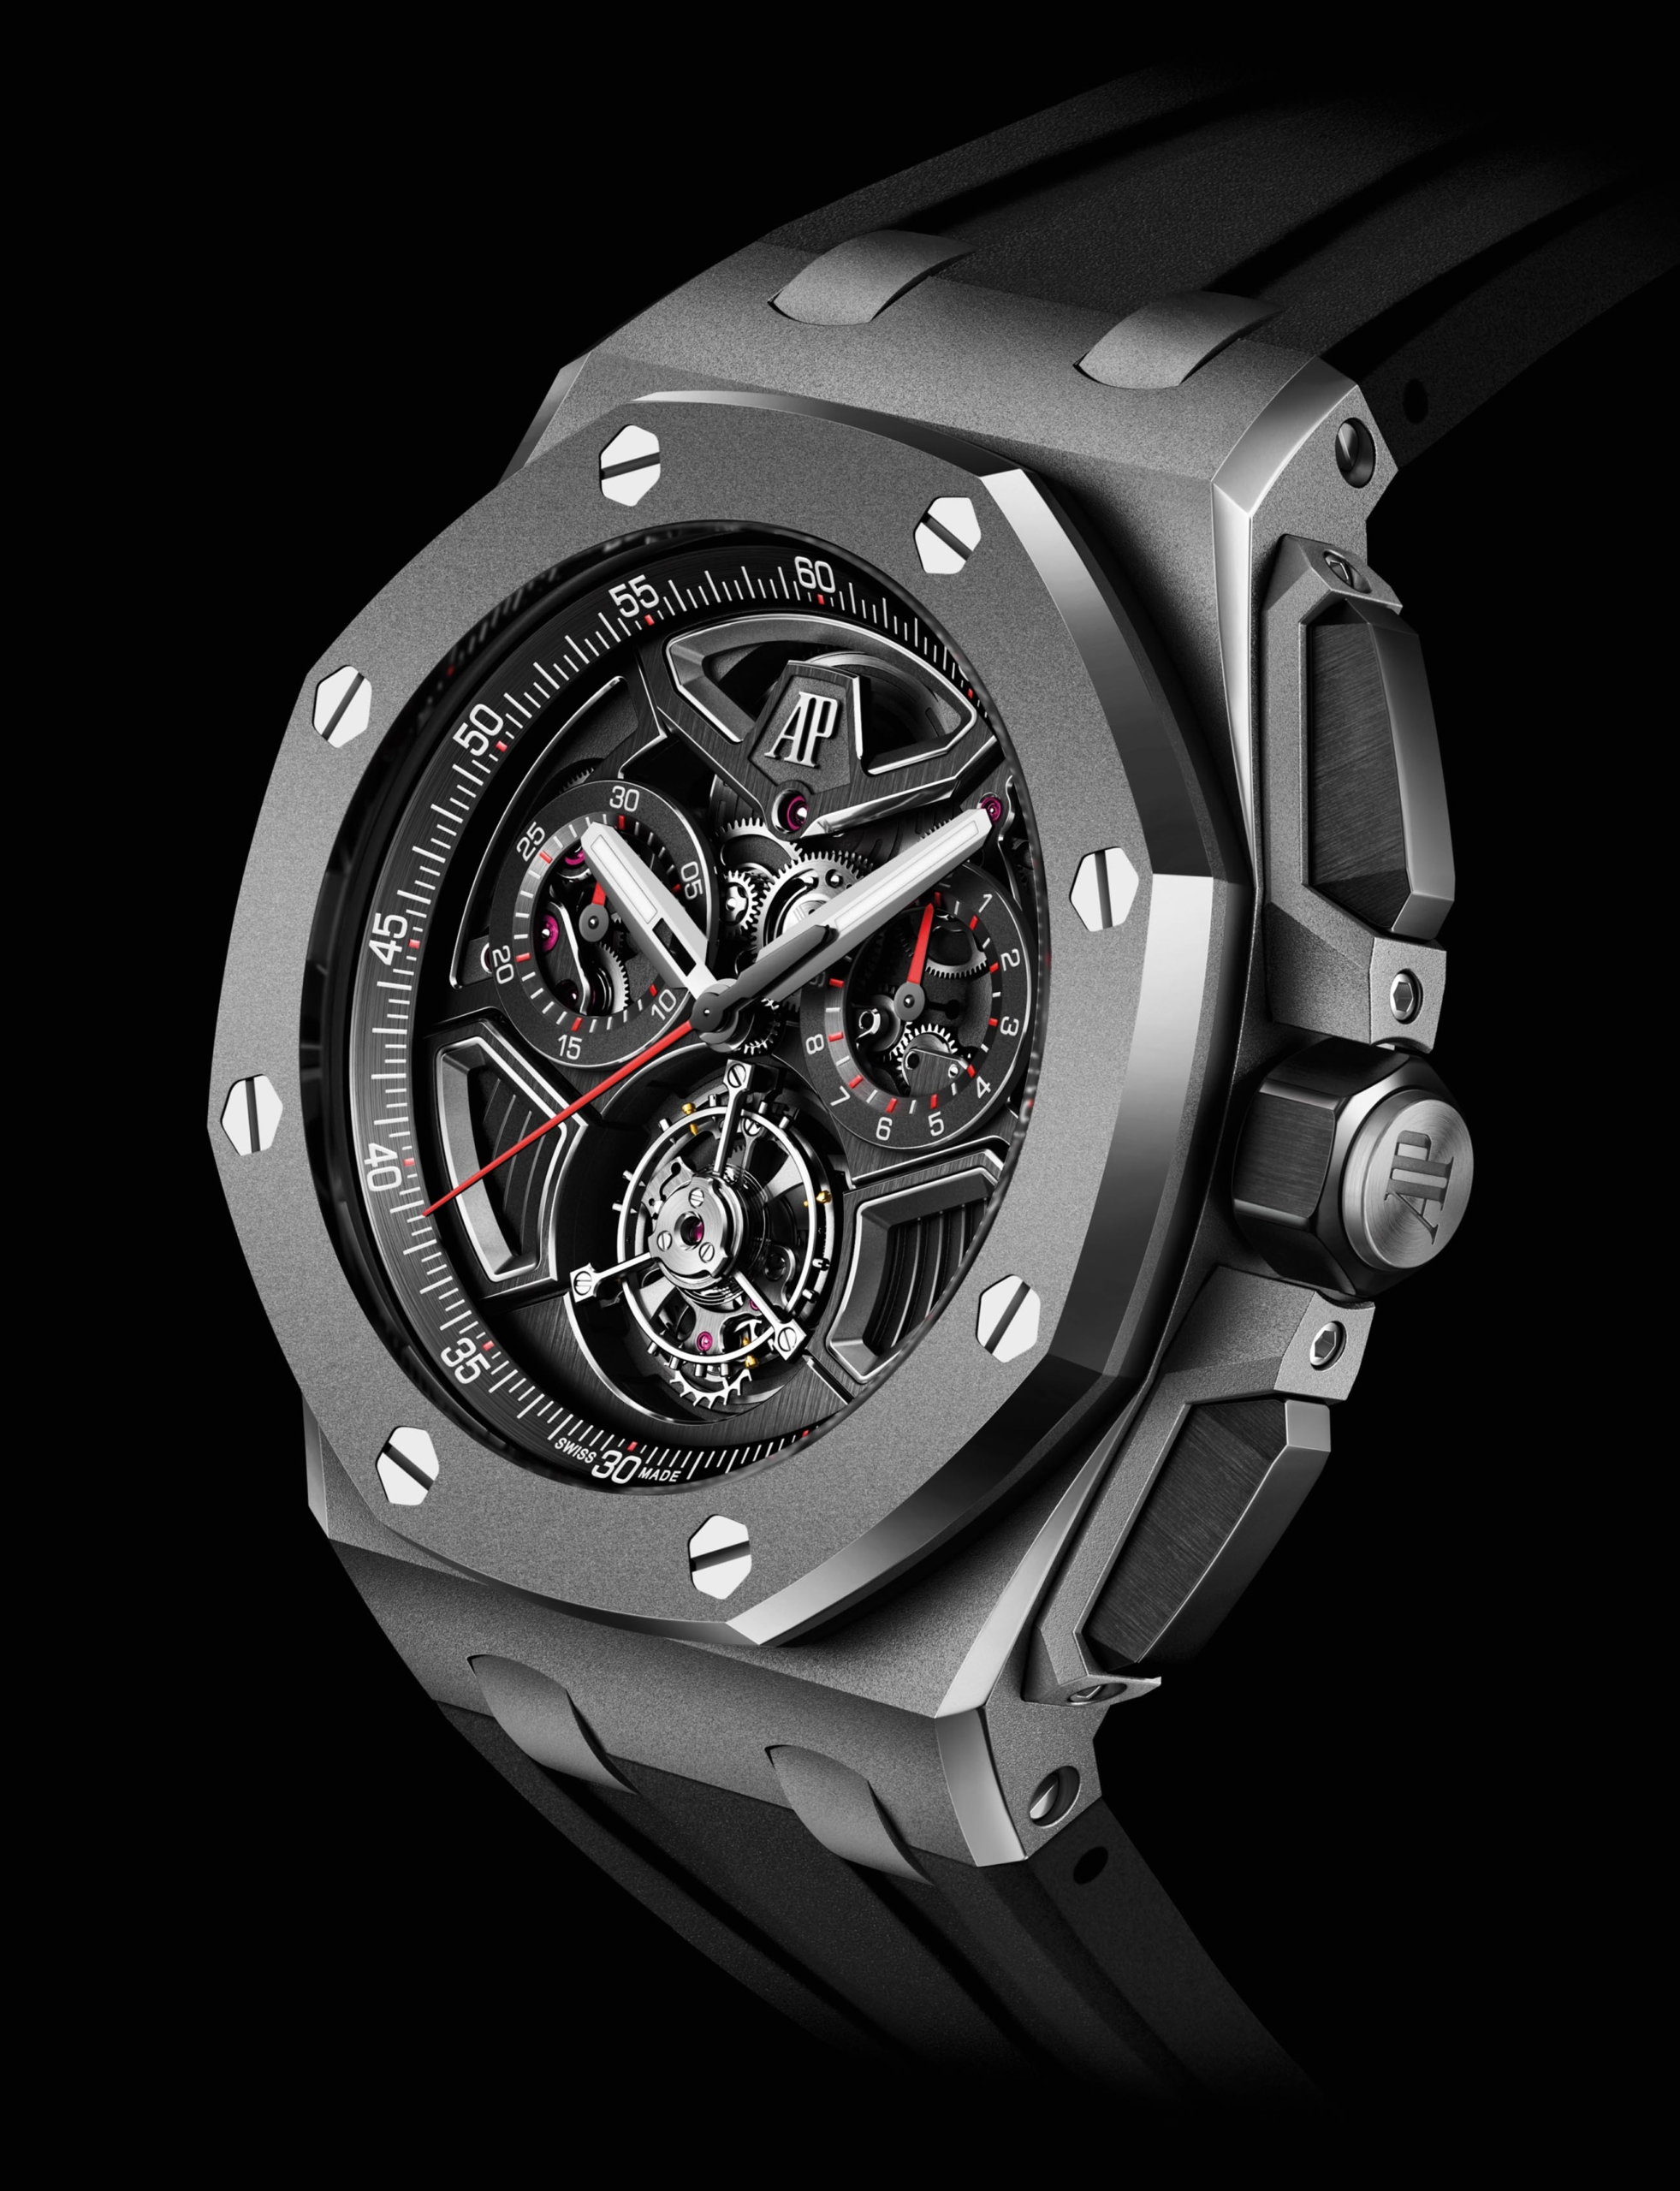 Audemars Piguet Offshore Flyback Tourbillon